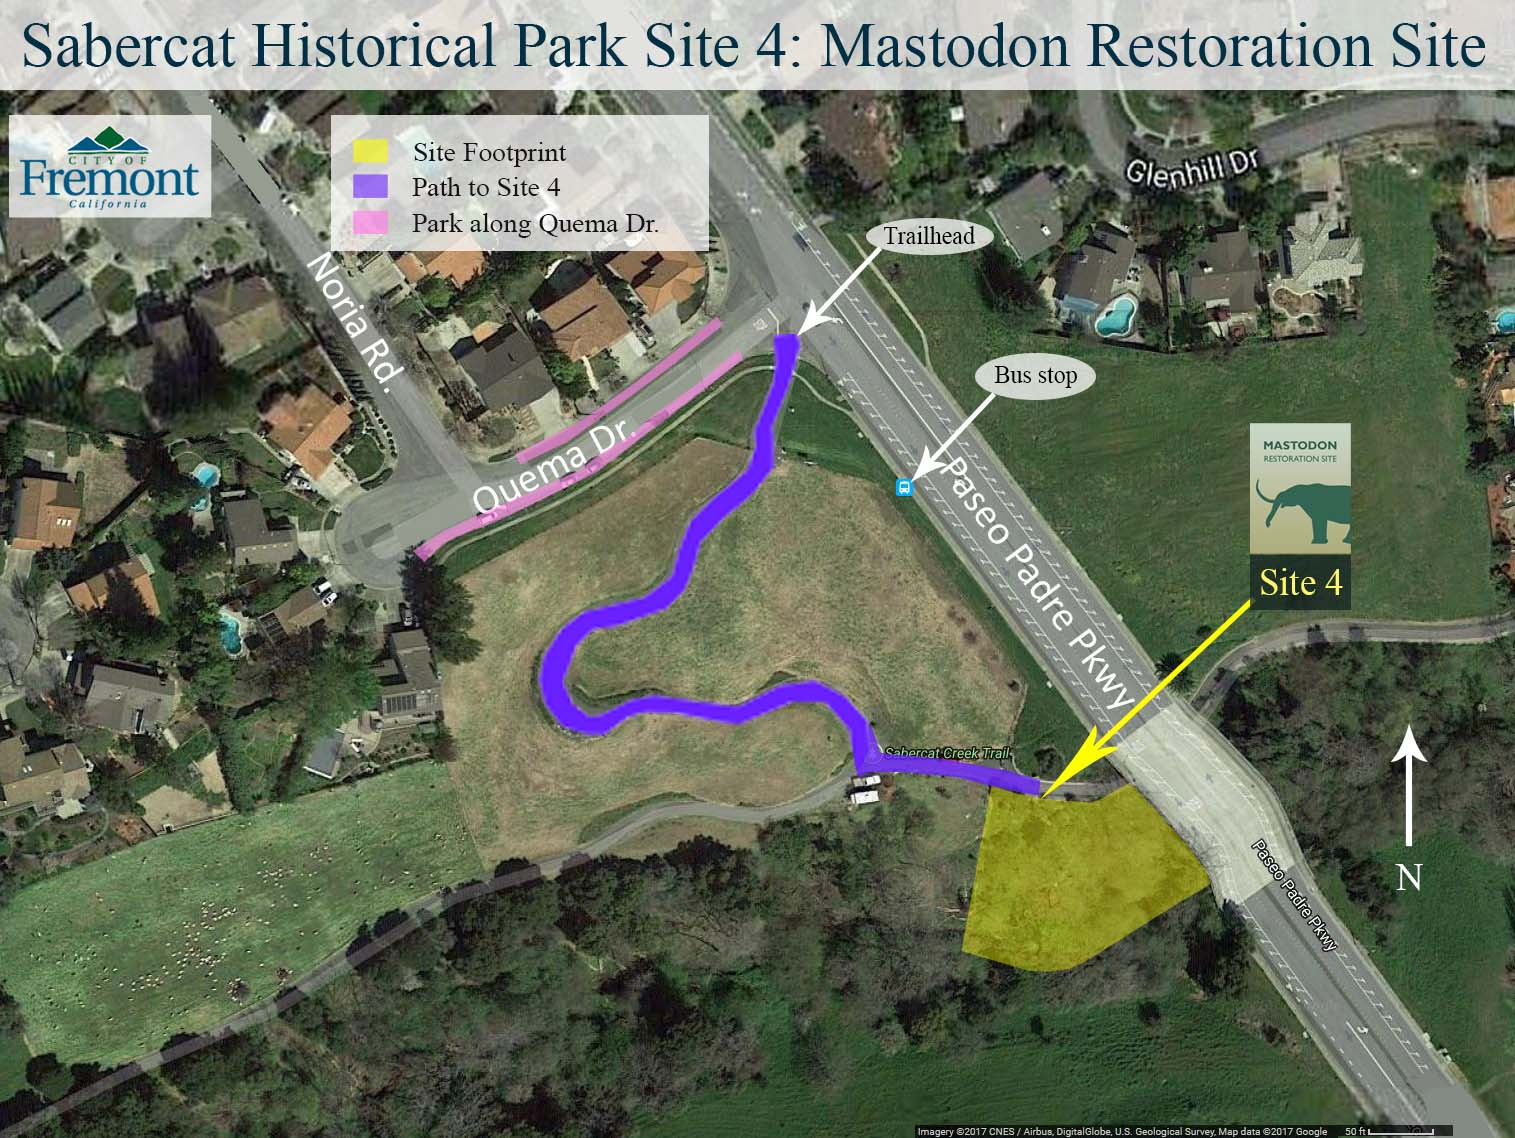 Site 4 Mastodon Restoration Site, Sabercat Historical Park nearby parking and trails